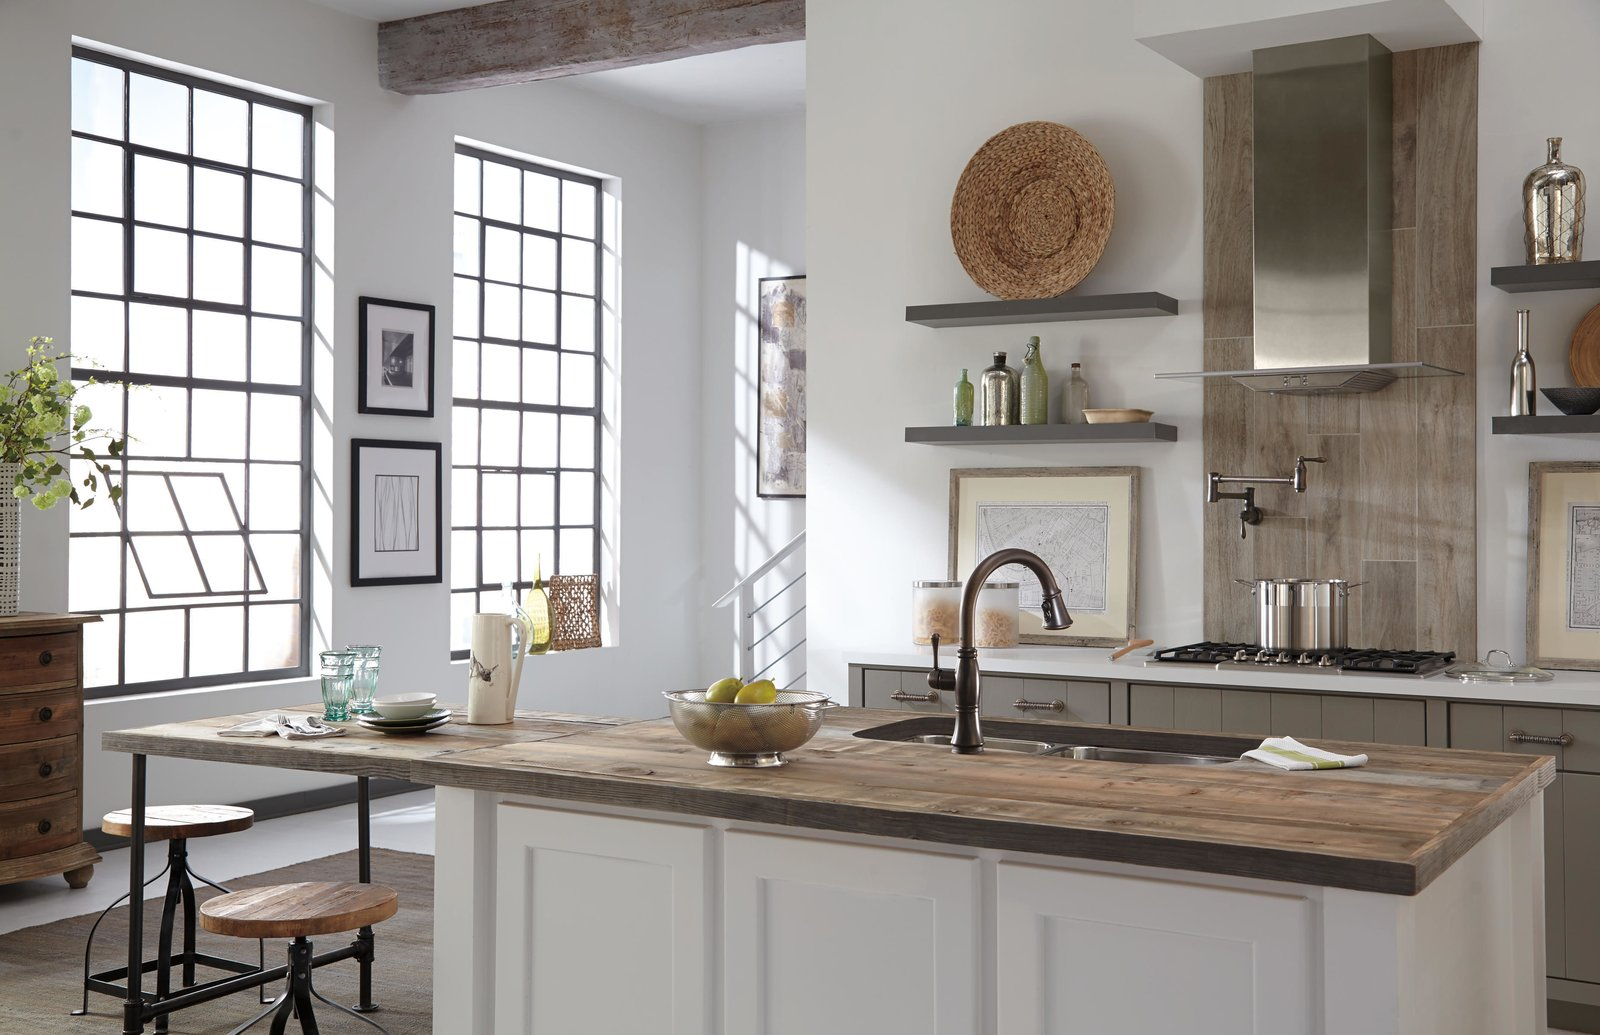 Photo 4 of 8 in 8 Ways to Refresh and Personalize Your Kitchen